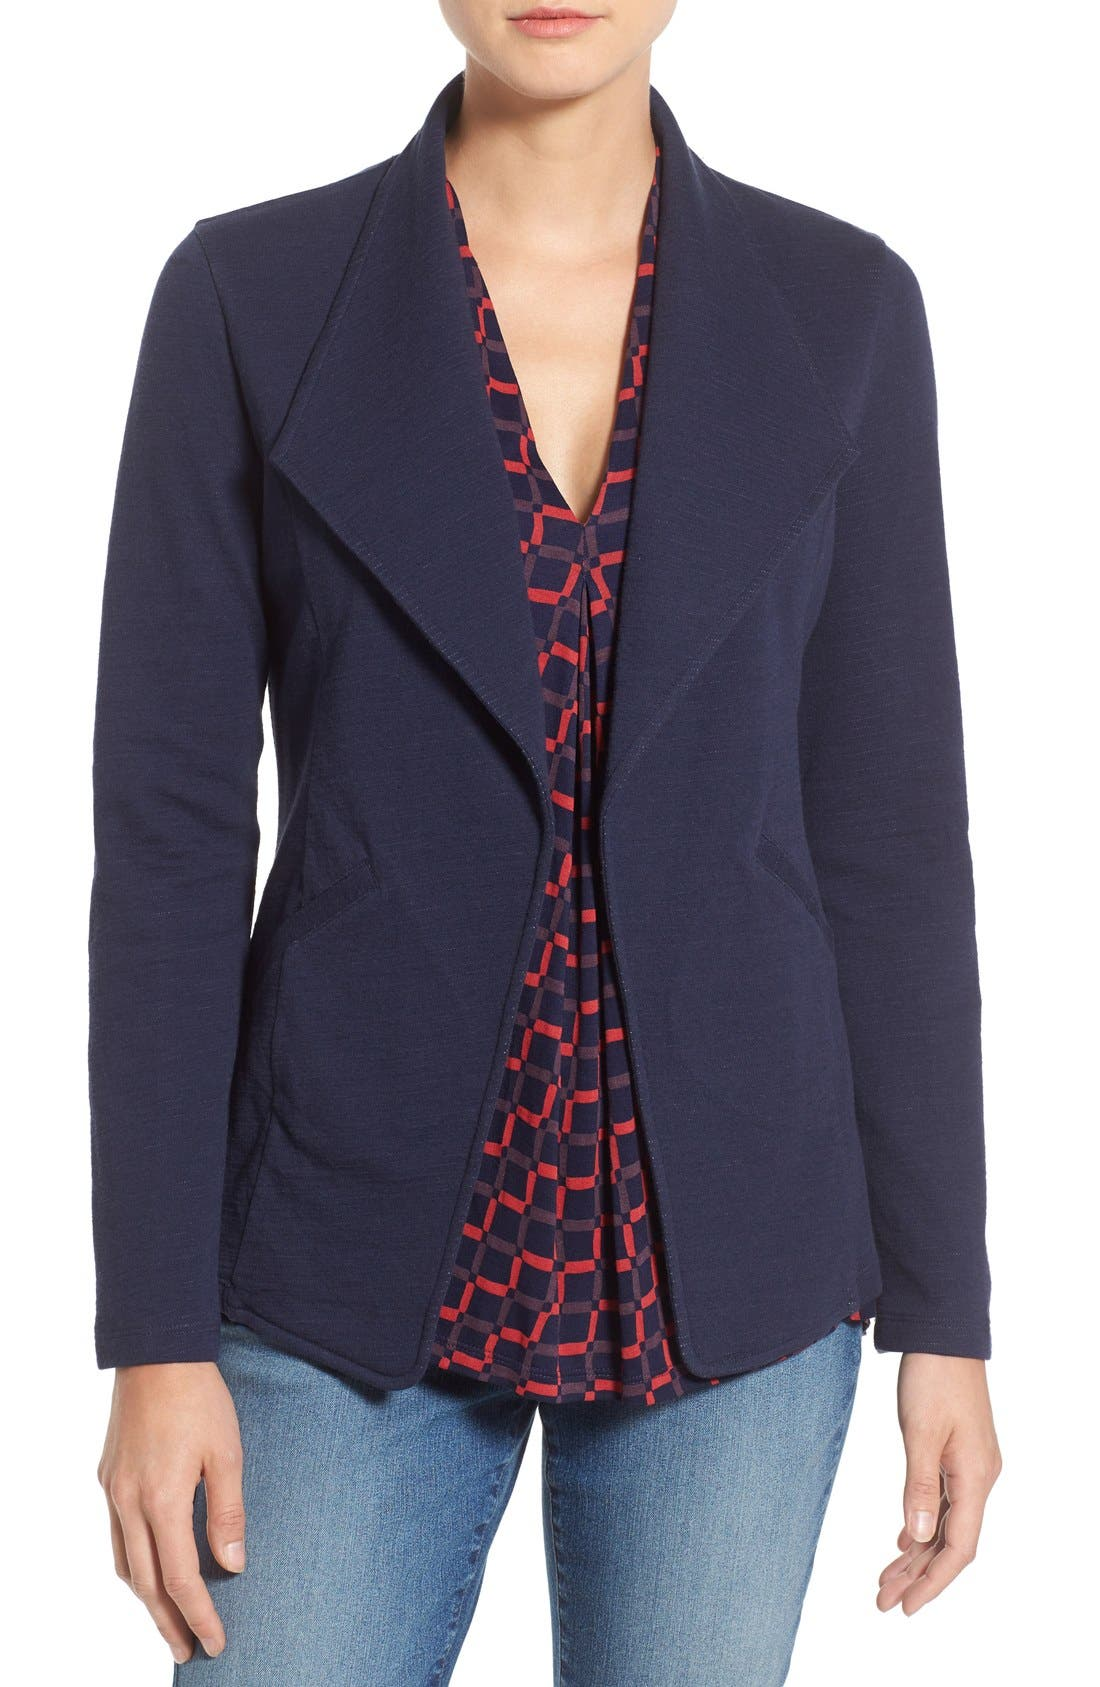 Alternate Image 1 Selected - Caslon® Cotton Knit Open Front Blazer (Regular & Petite)